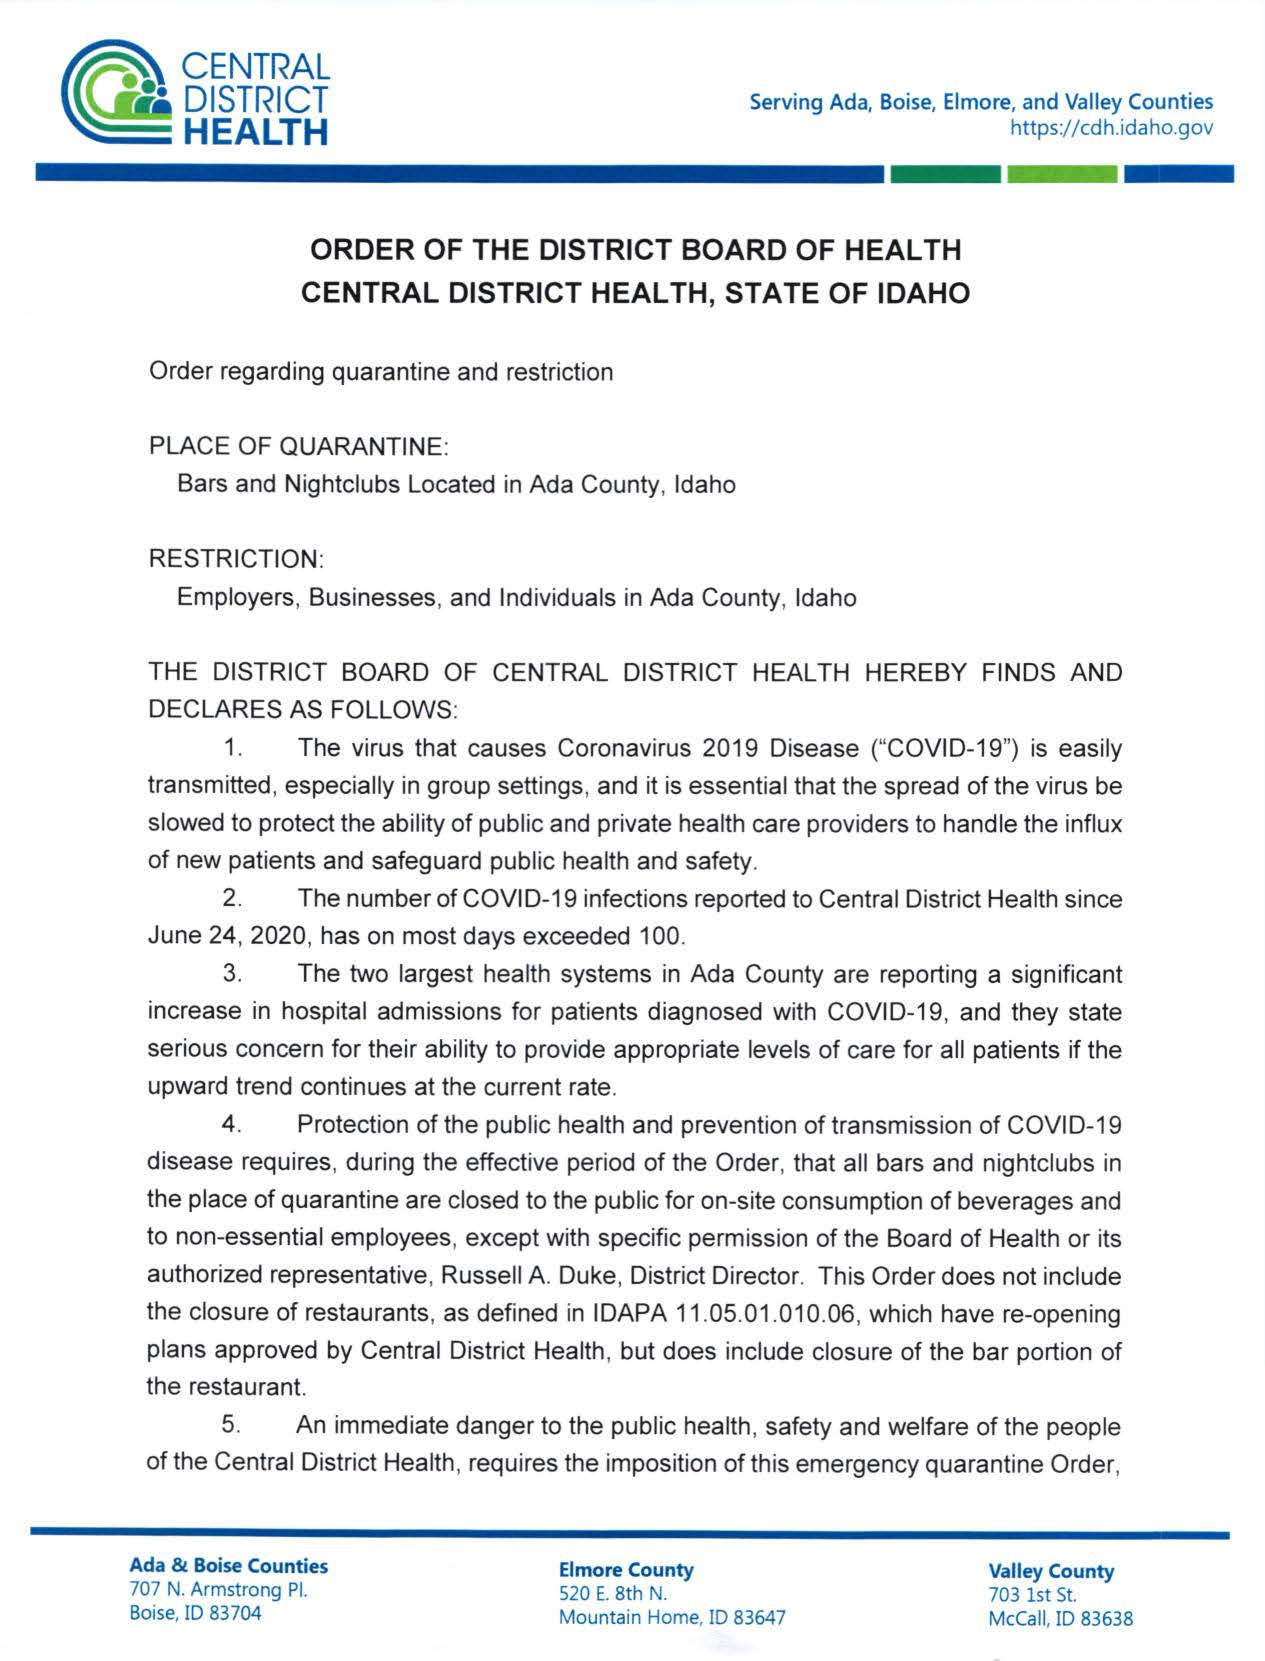 CDH Quarantine and Restriction Order 07-14-20 Final_Page_1 (JPEG)